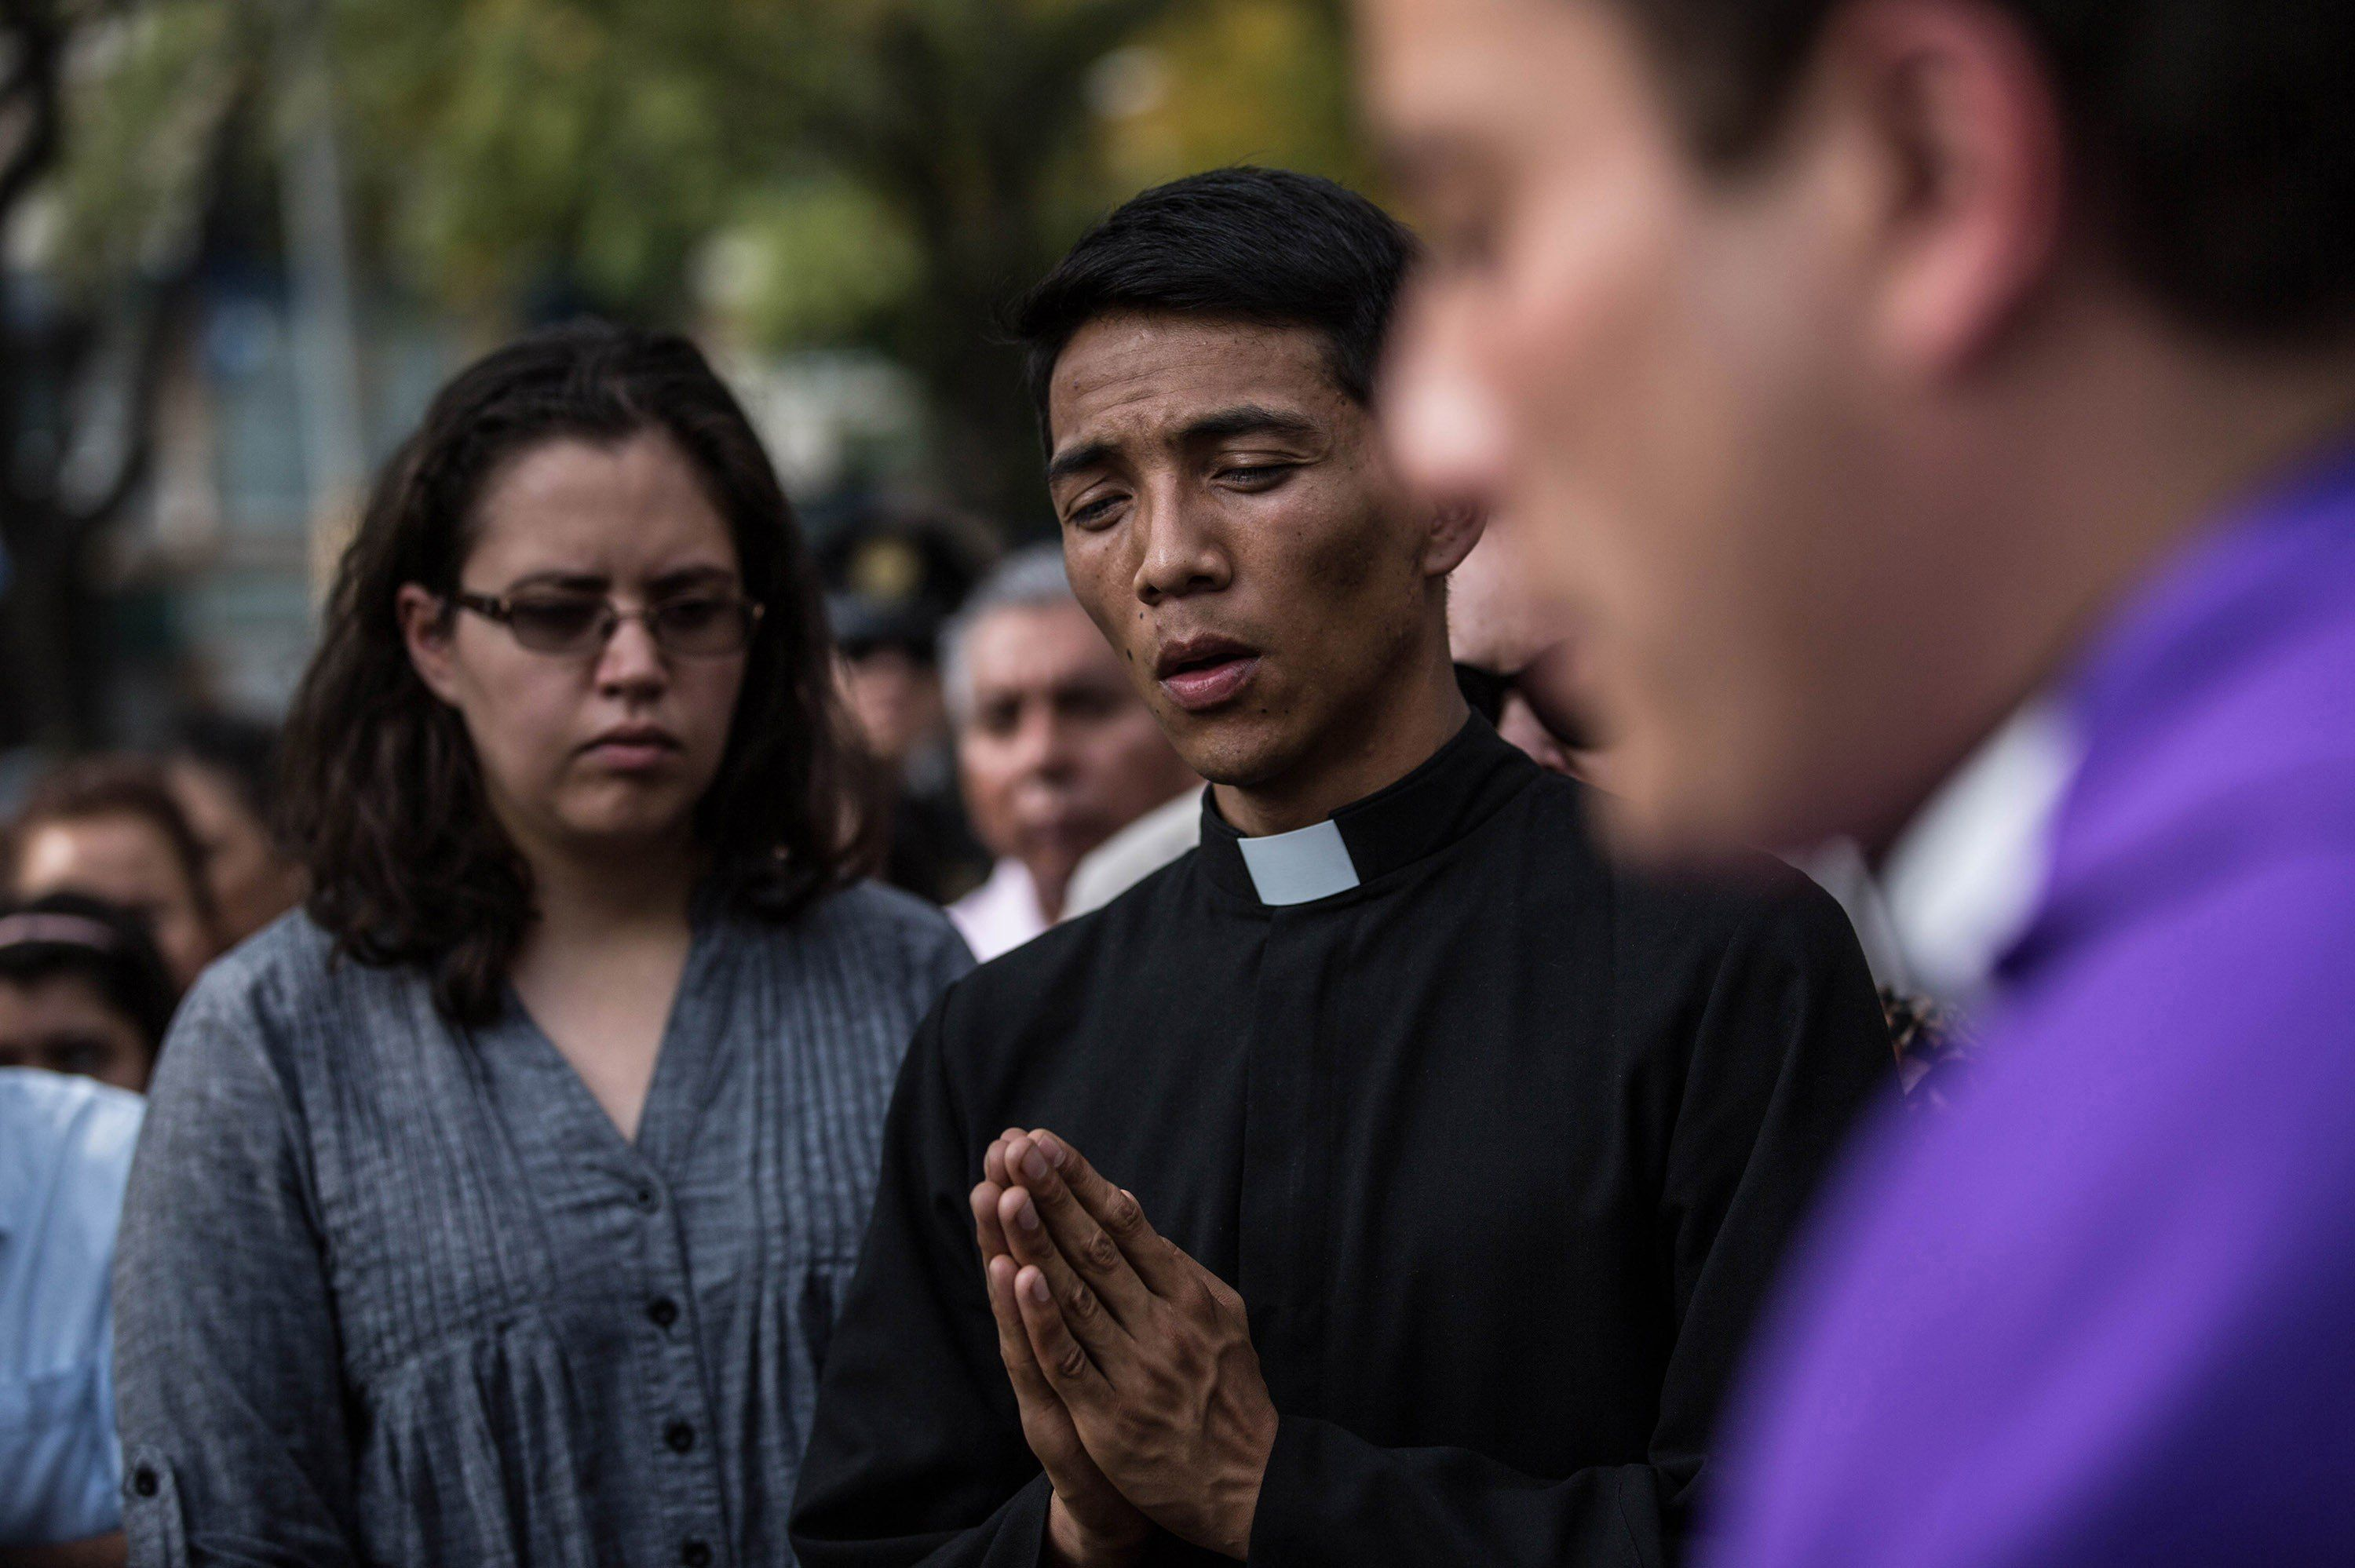 MEXICO CITY, MEXICO -  SEPTEMBER 21: Relatives and friends of victims attend a catholic mass outside the the Enrique Rebsamen school that collapsed during Tuesday's magnitude 7.1 earthquake in Mexico City, Mexico on September 21, 2017. At least 25 bodies have been pulled from the wreckage at Enrique Rebsamen school following the magnitude 7.1 quake Tuesday, reported.  (Photo by Daniel Cardenas/Anadolu Agency/Getty Images)